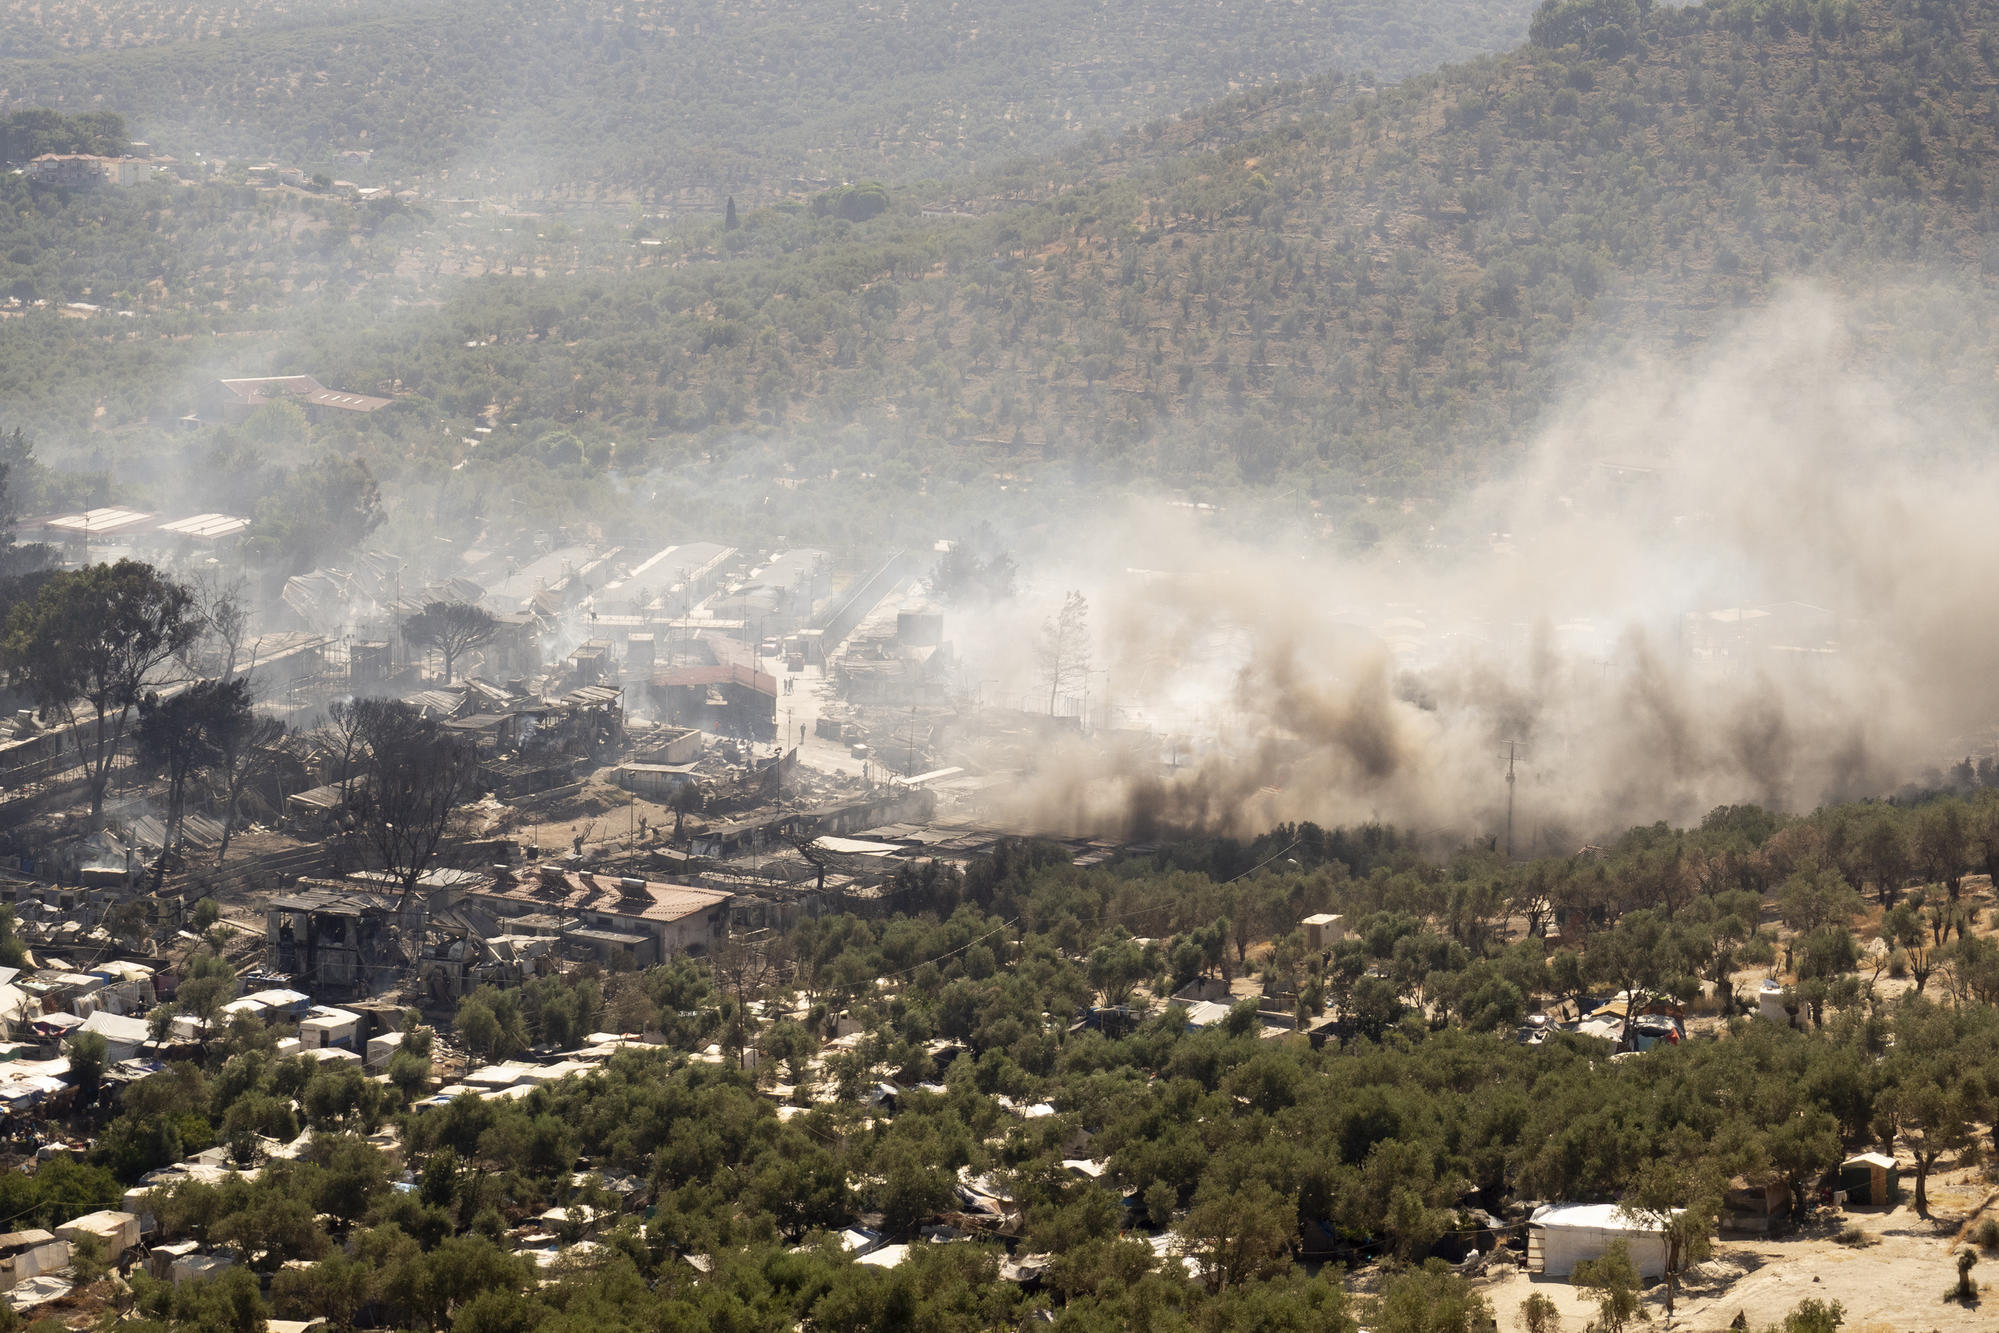 Aerial view of the fire that destroyed the camp